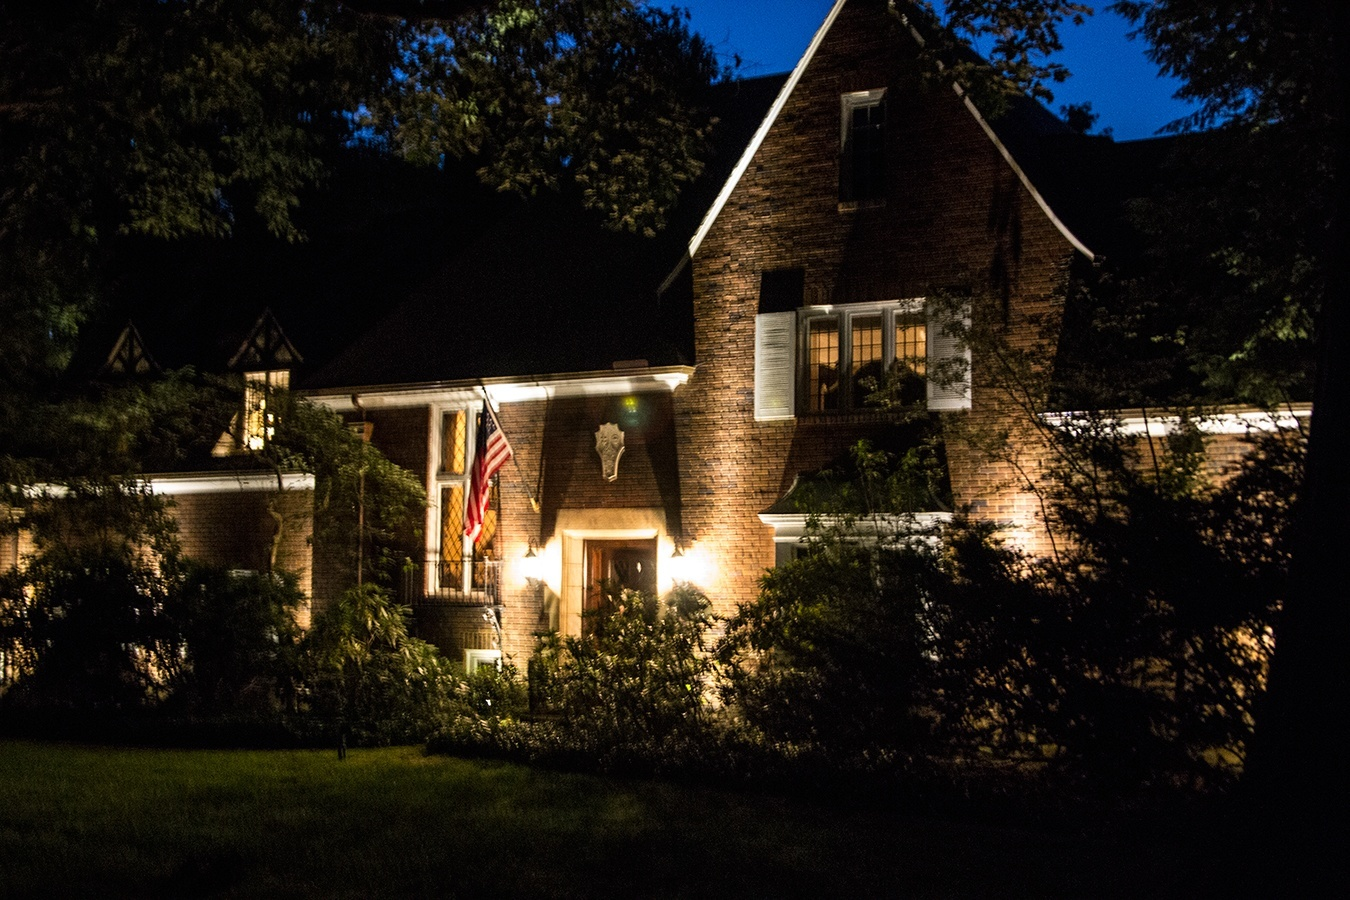 Landscape Lighting Image 1.jpg